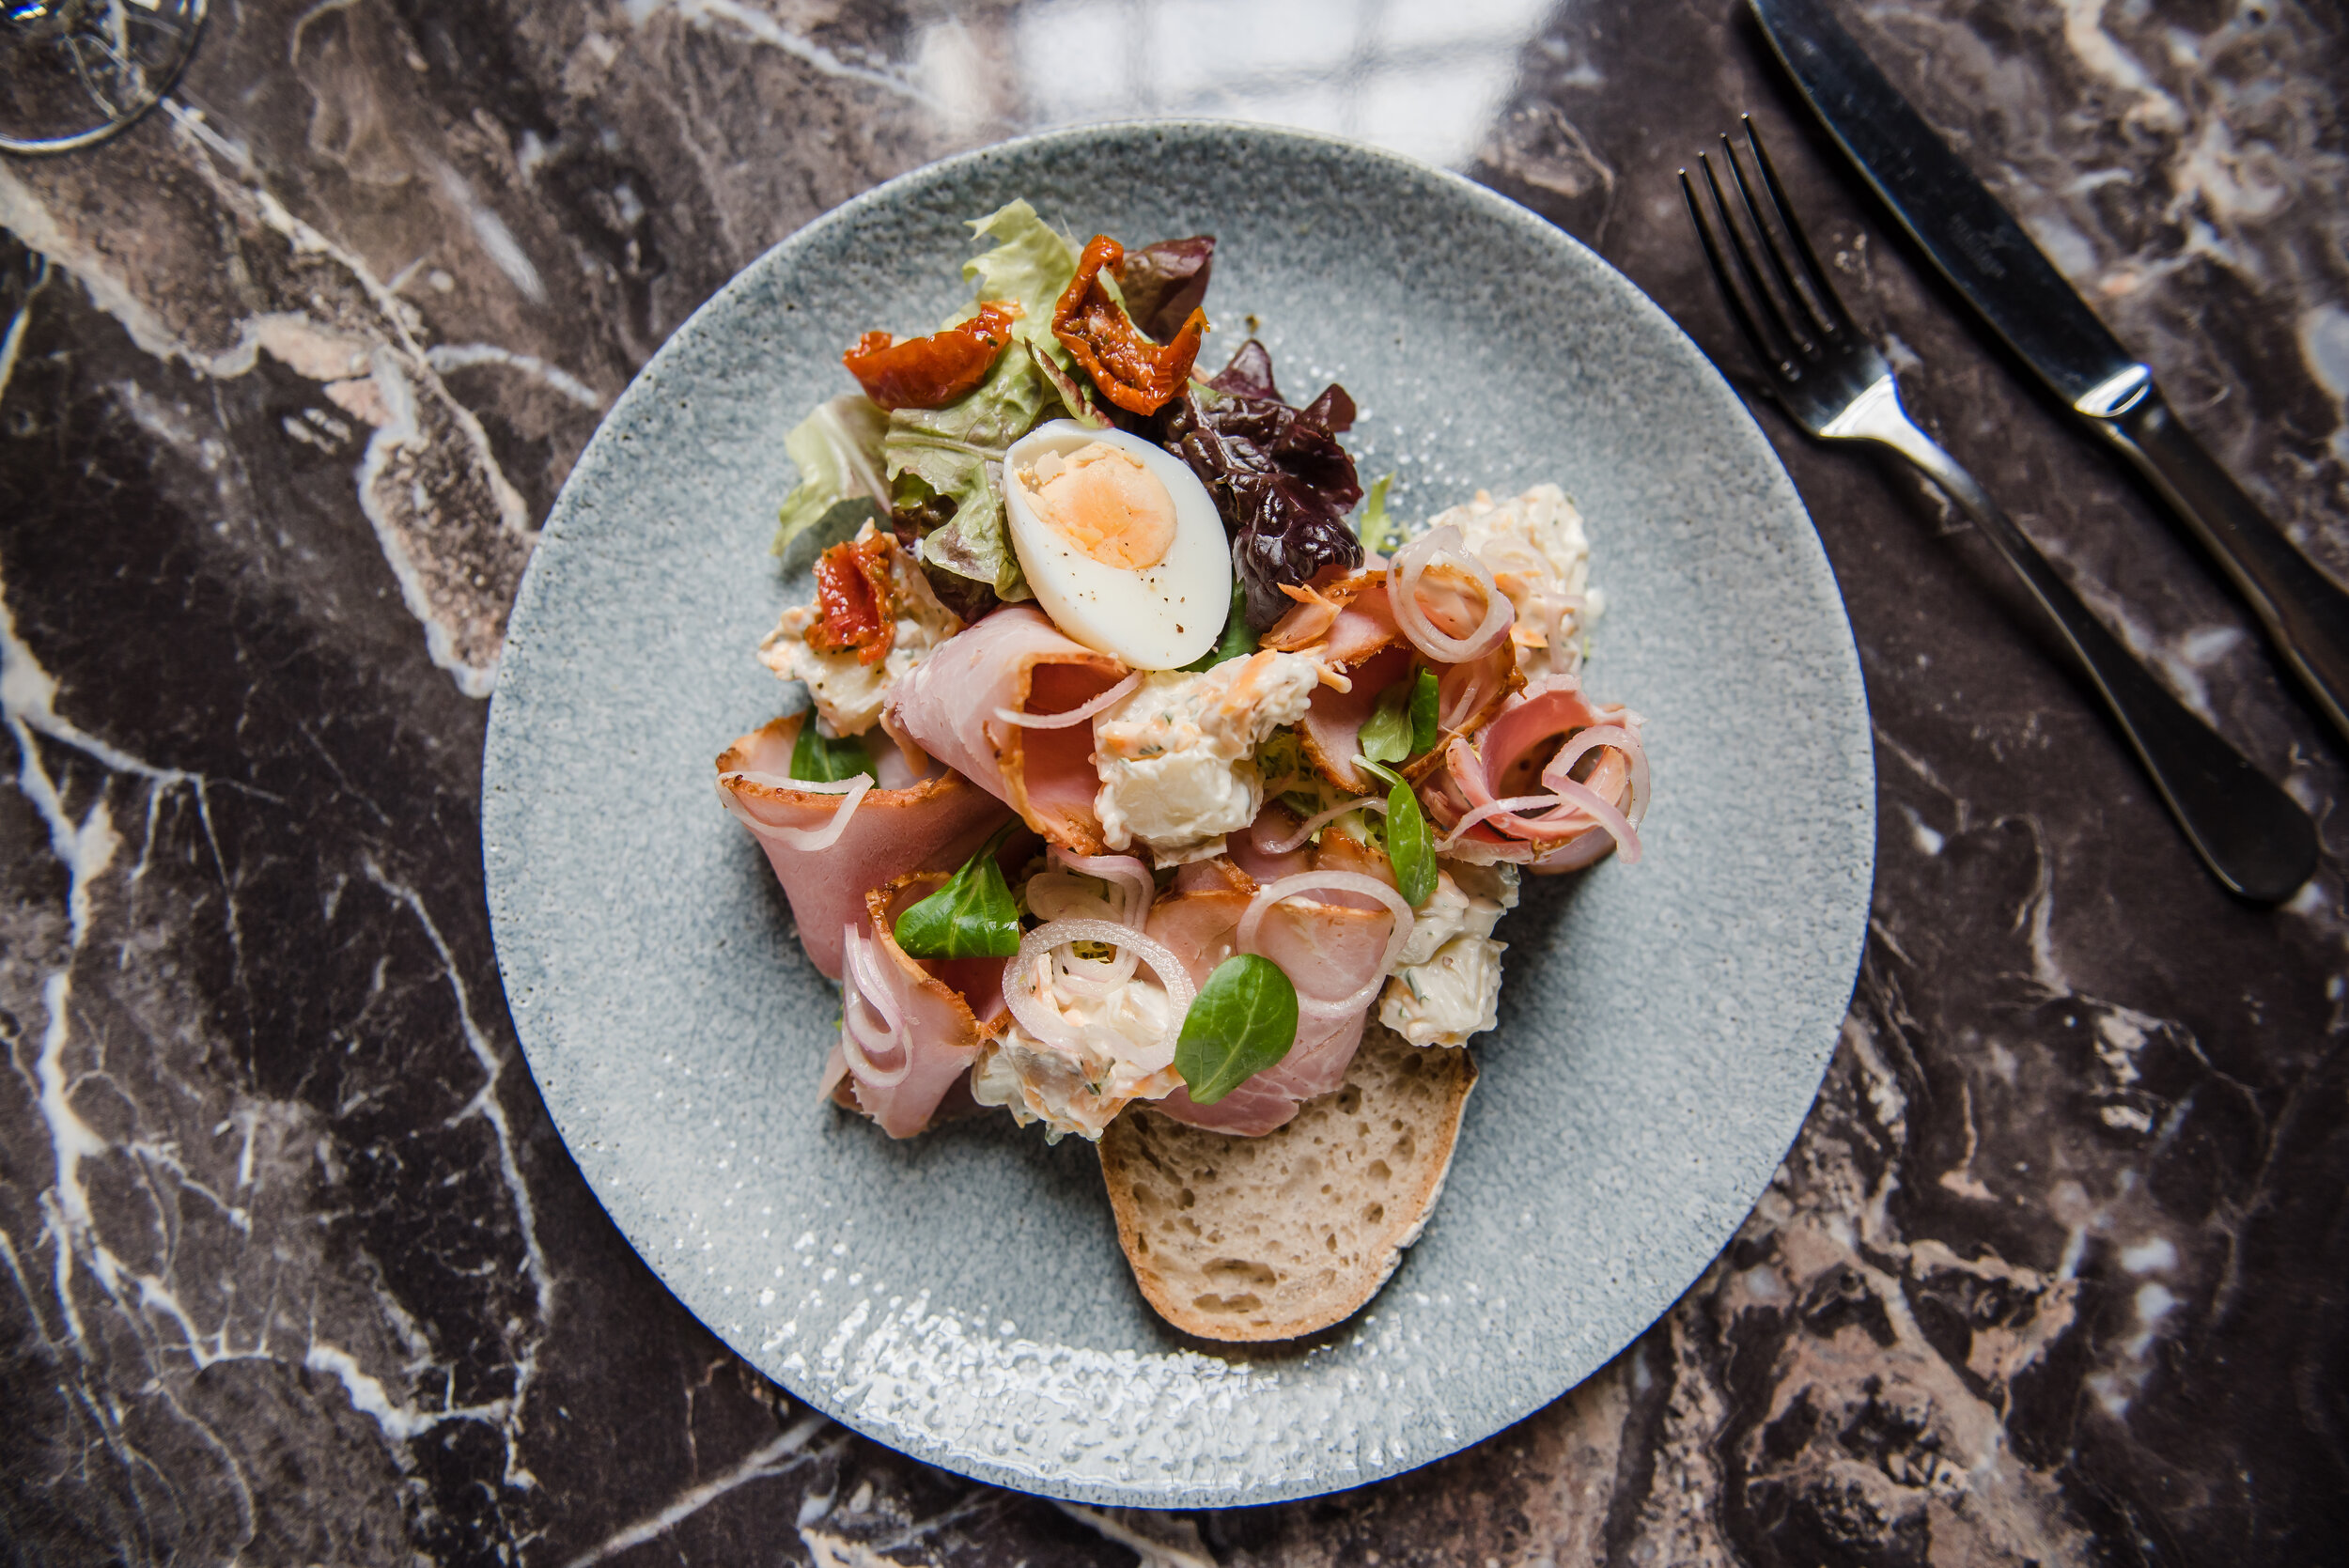 SMØRREBRØD - This is our '1485' sandwich which celebrates the foundation of the Drapers Guild at 10 St. Mary's Place. It's made with home cured ham, cheesy potato salad and pickled onion and comes complete with a side salad for just £5.95